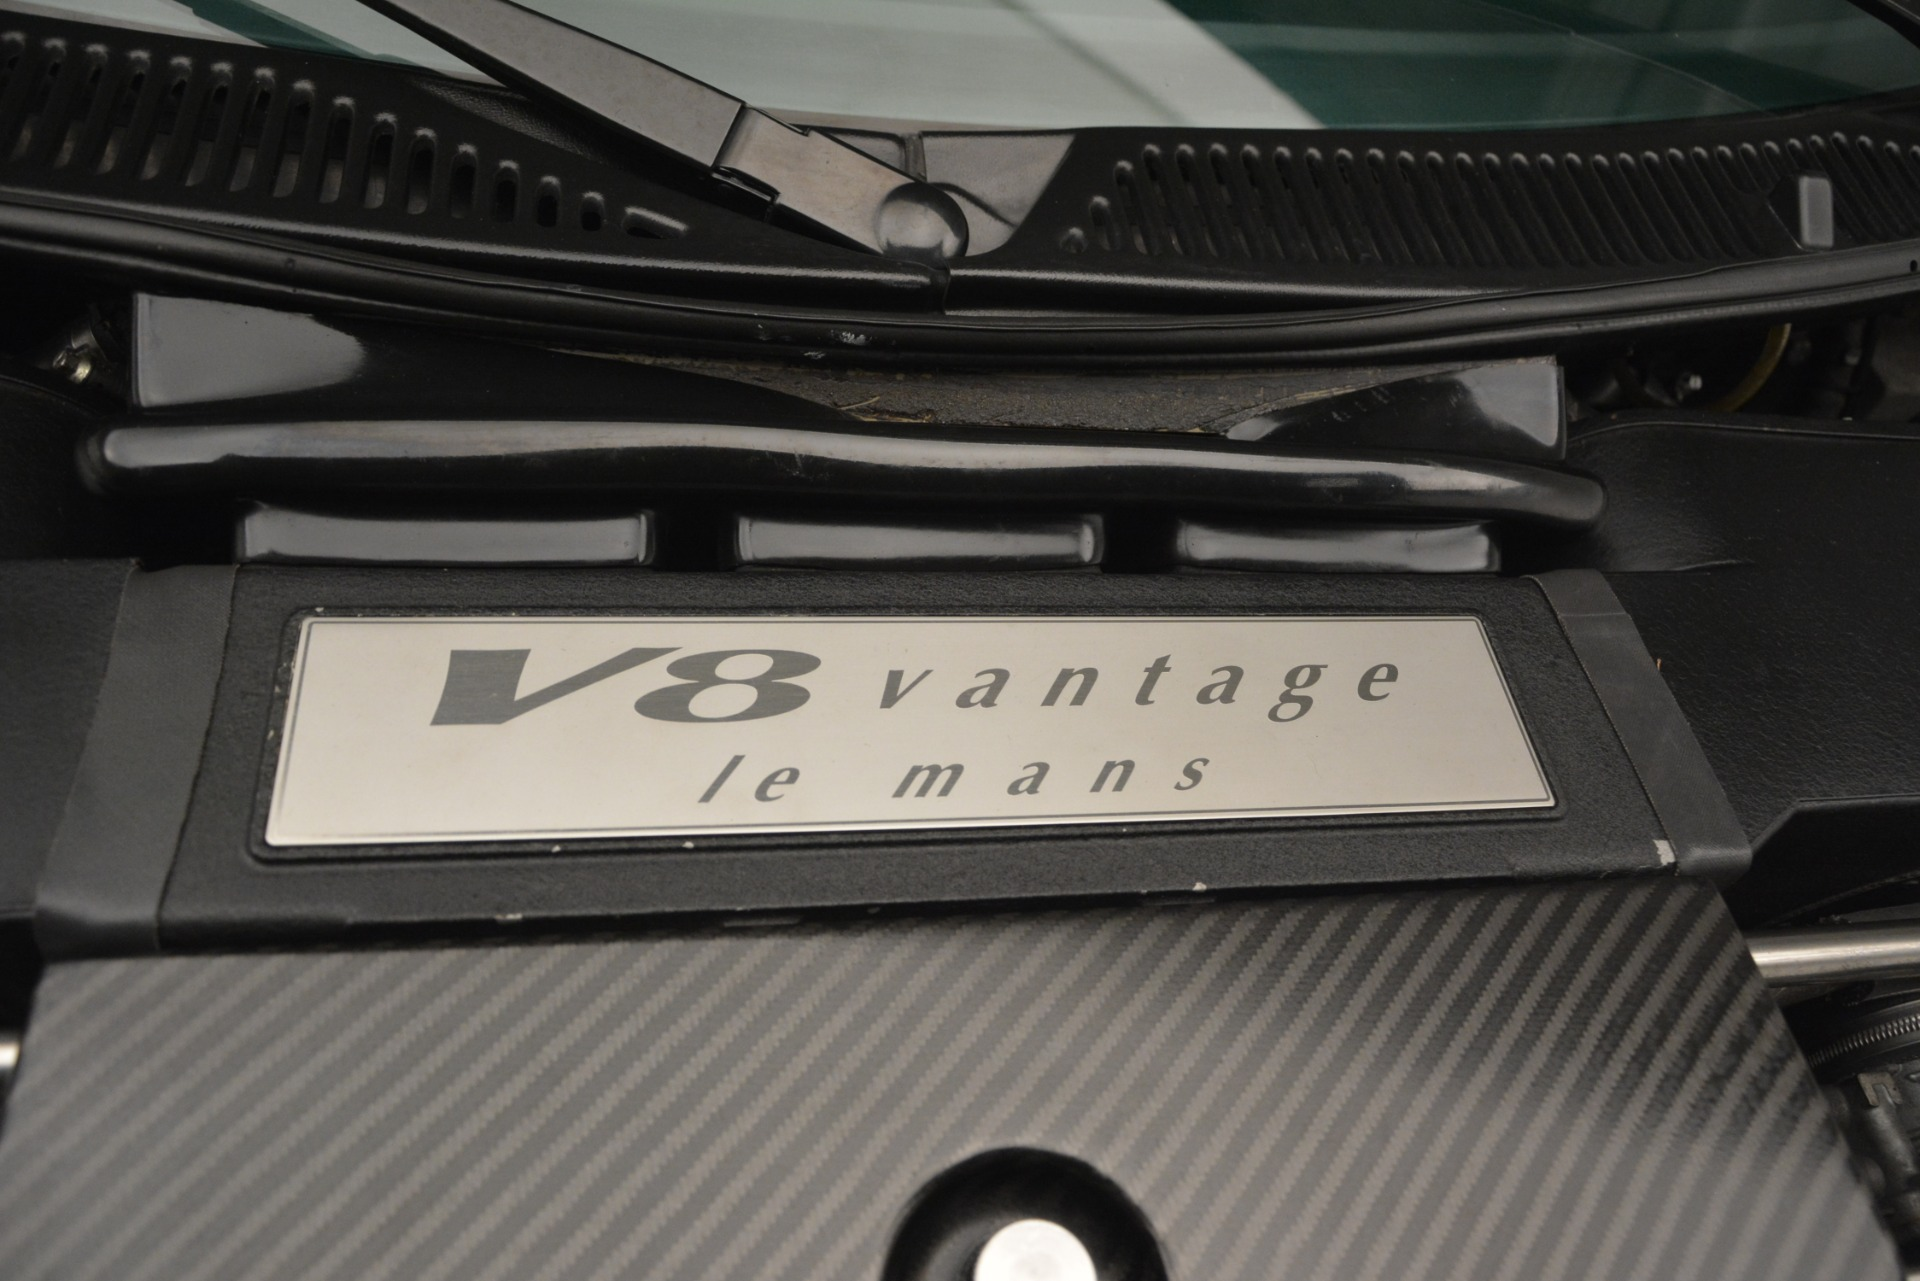 Used 1999 Aston Martin V8 Vantage Le Mans V600 Coupe For Sale In Westport, CT 2789_p33